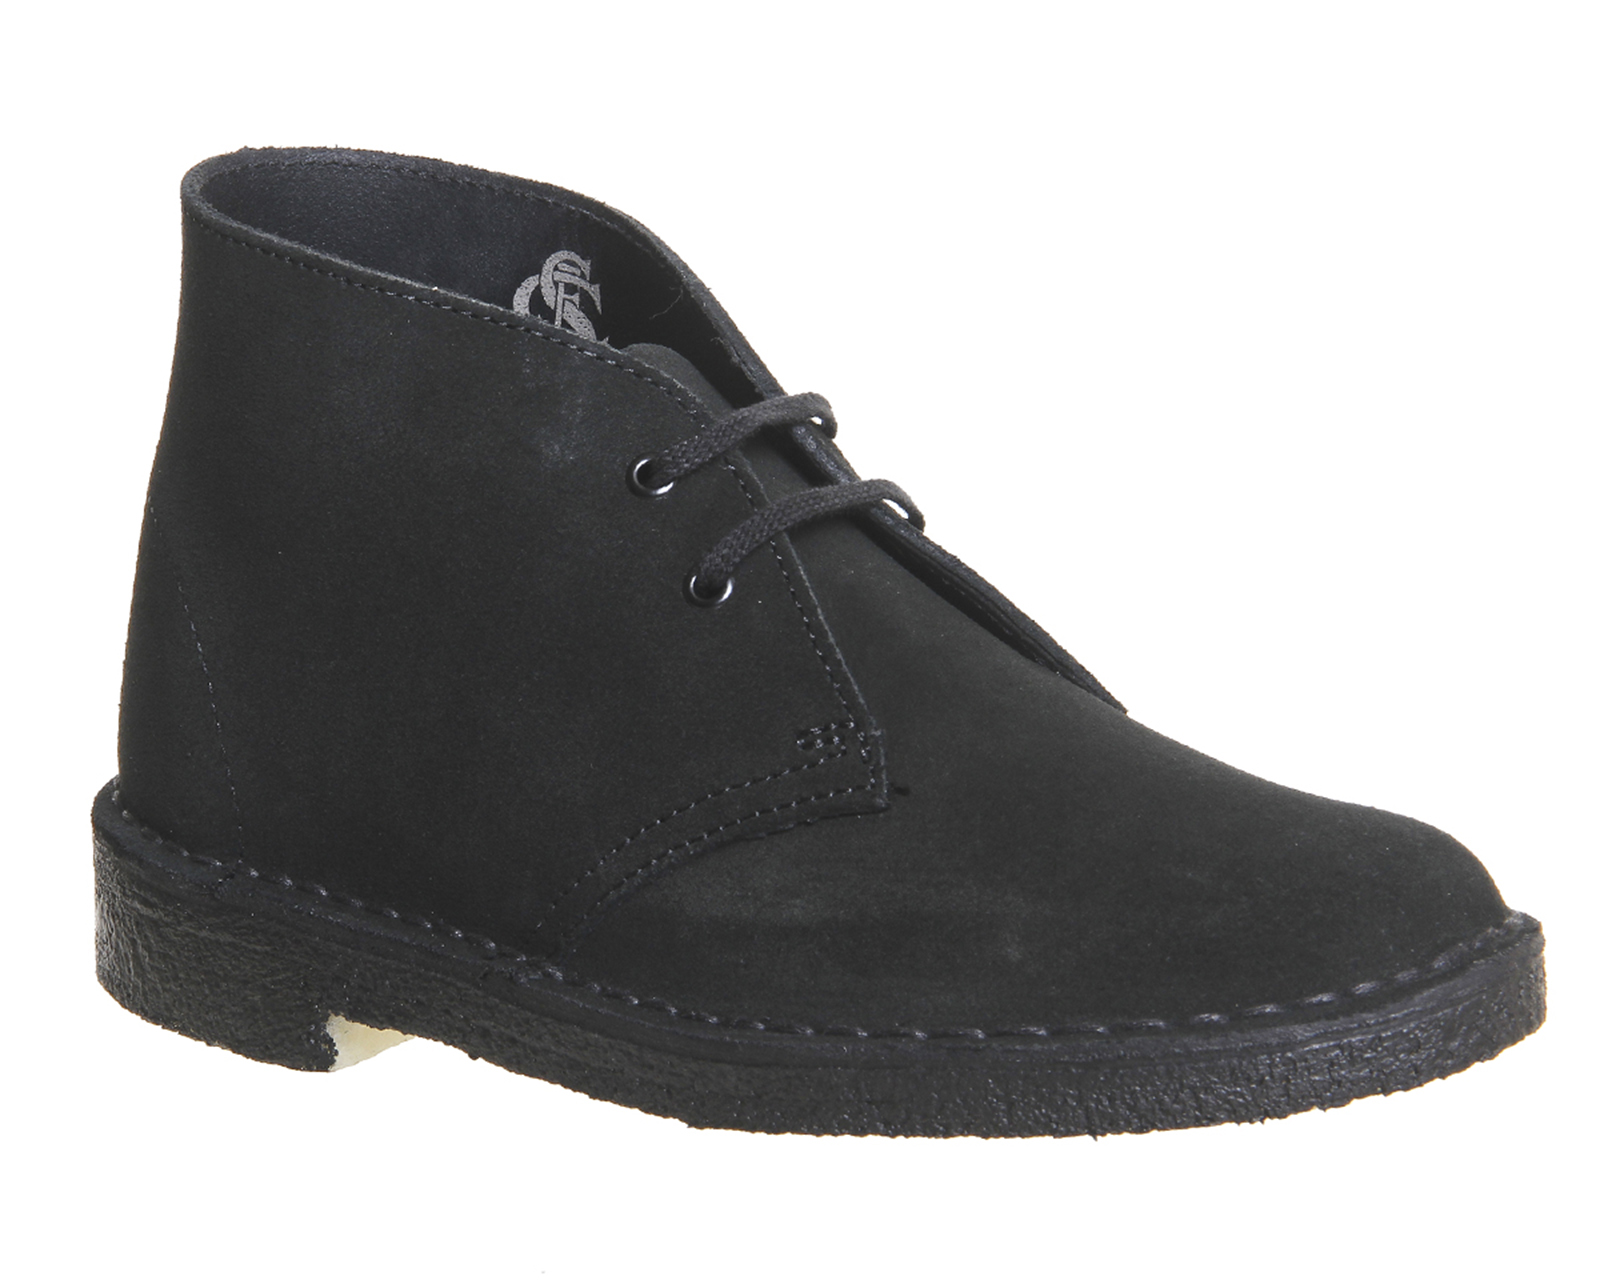 womens clarks originals desert boots black suede boots ebay. Black Bedroom Furniture Sets. Home Design Ideas